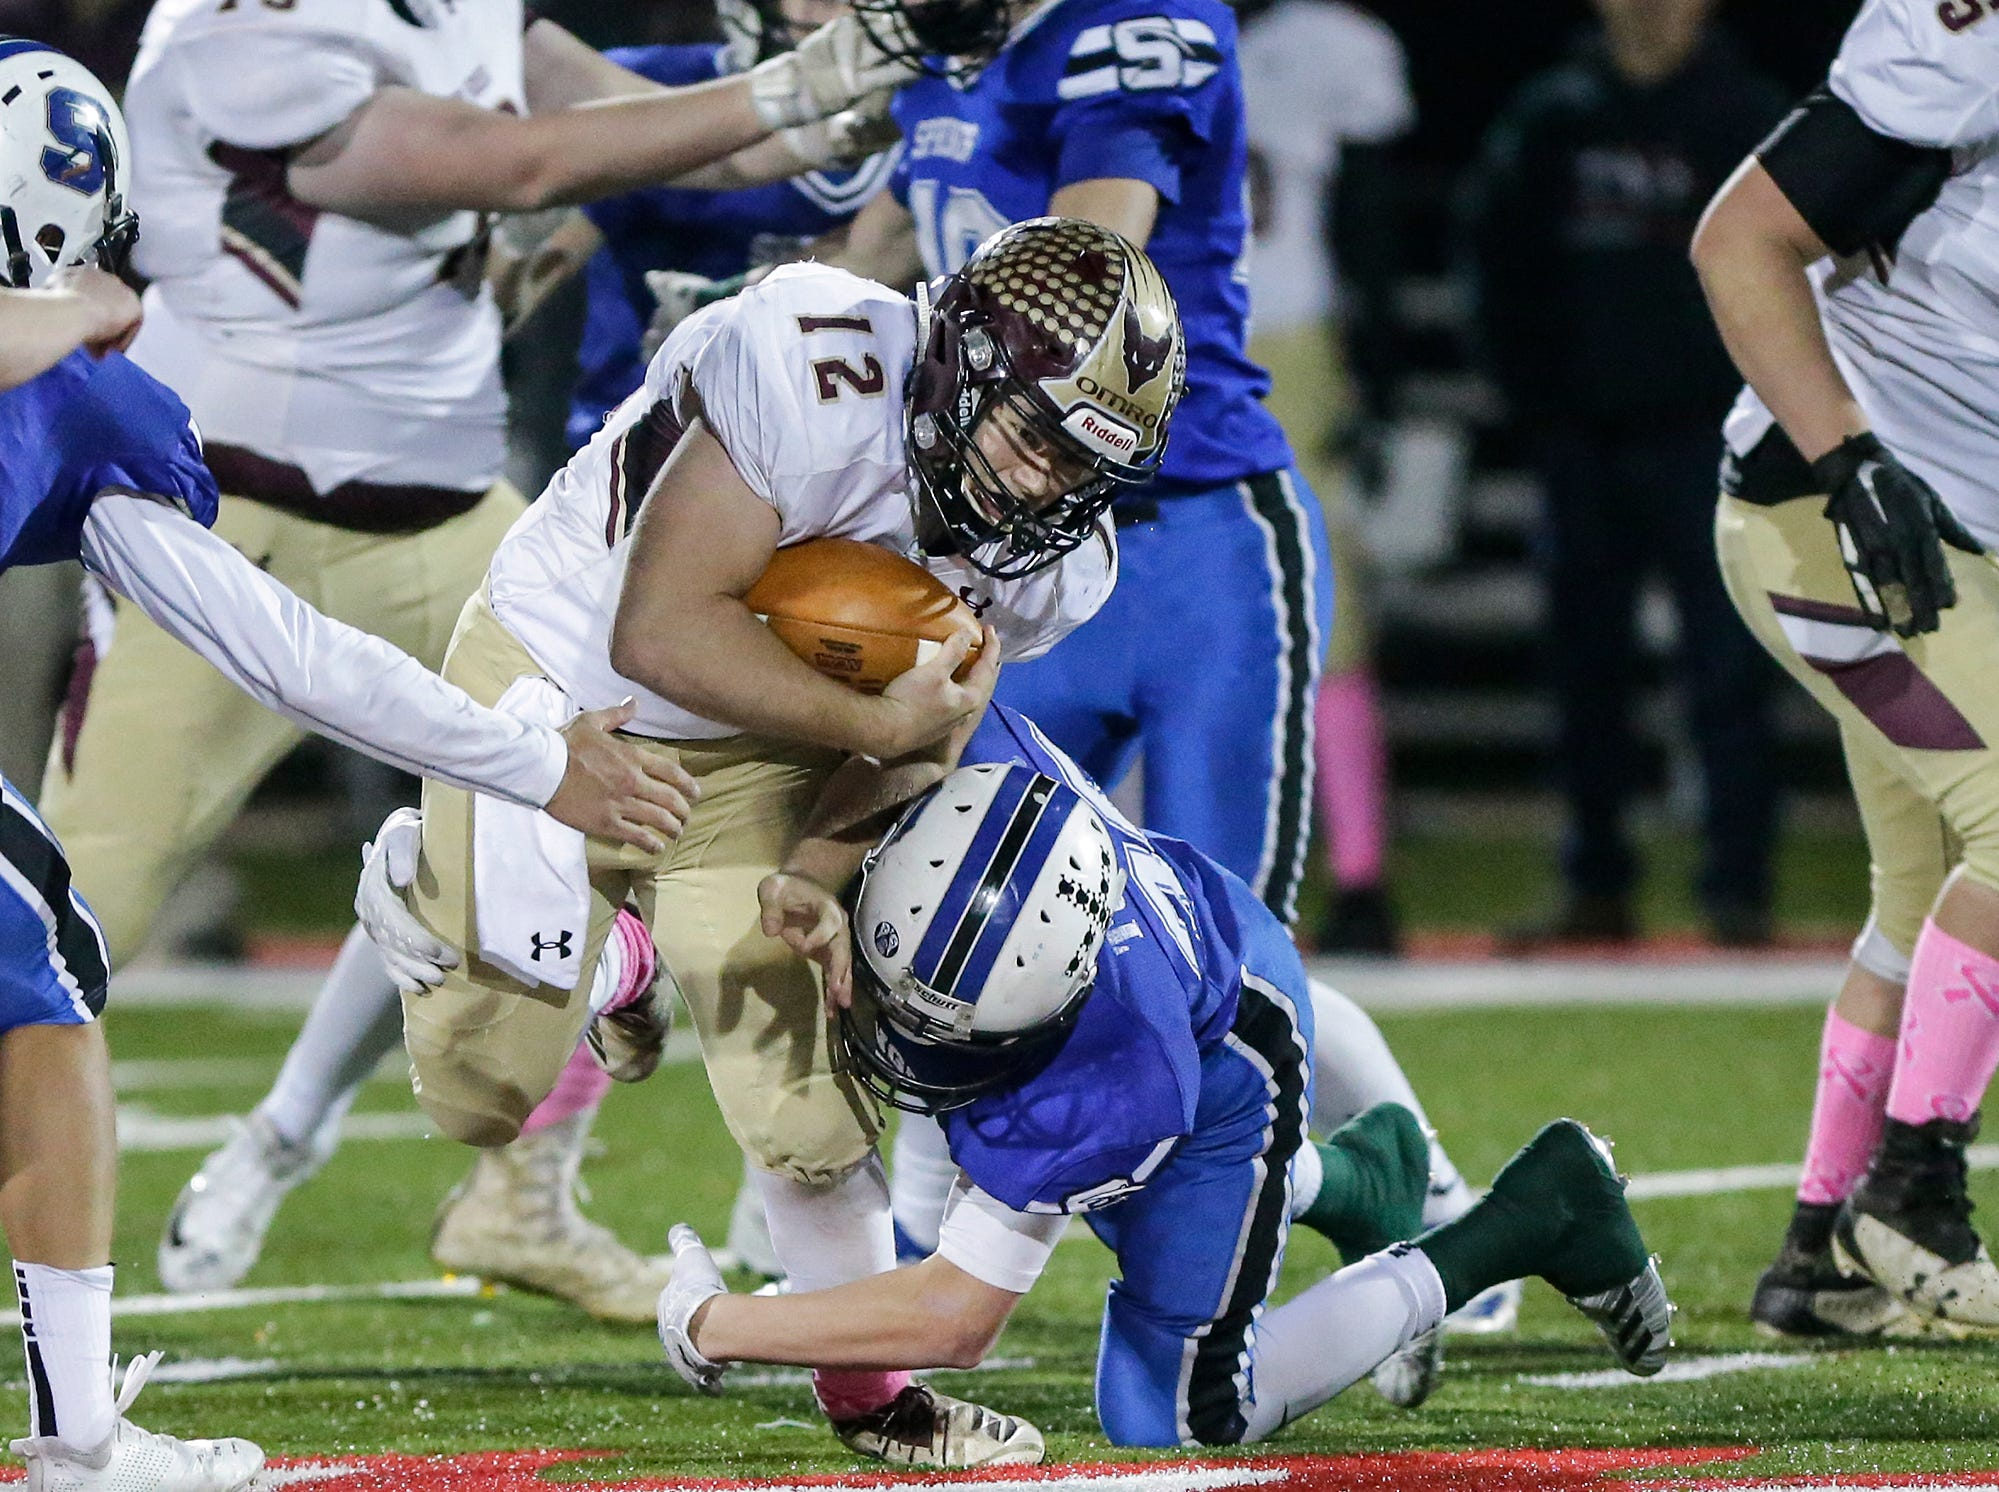 St. Mary's Springs Academy football's Ezra Tucker tackles Omro High School's Jacob Kafer Friday, October 26, 2018 during their WIAA division five, level 2 playoff game played in Lomira, Wisconsin. Springs won the match-up 33-20. Doug Raflik/USA TODAY NETWORK-Wisconsin